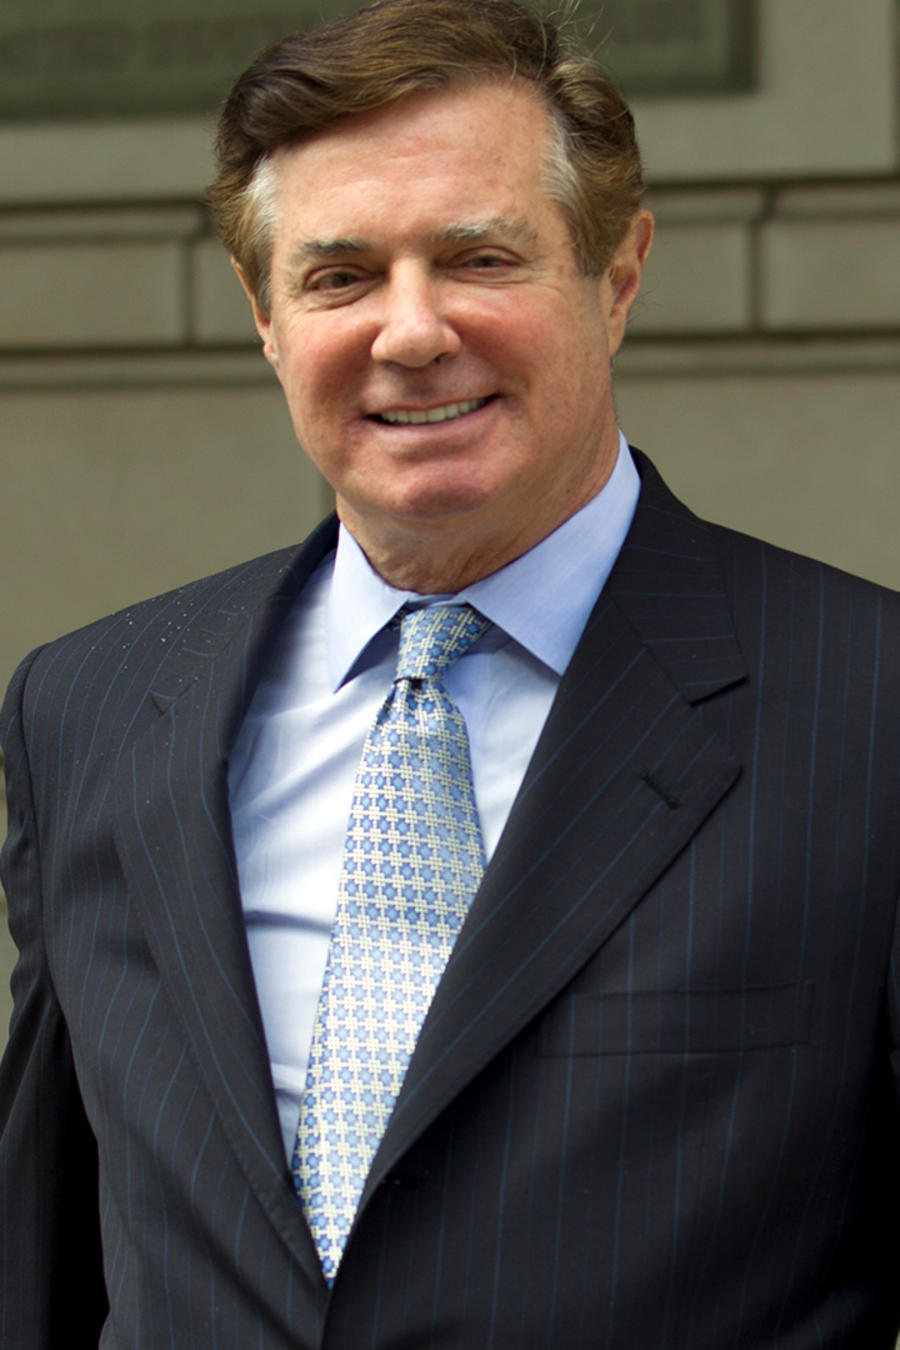 Paul Manafort, exjefe de campaña de Trump, sale de una corte federal en Washington D.C. el 23 de mayo de 2018